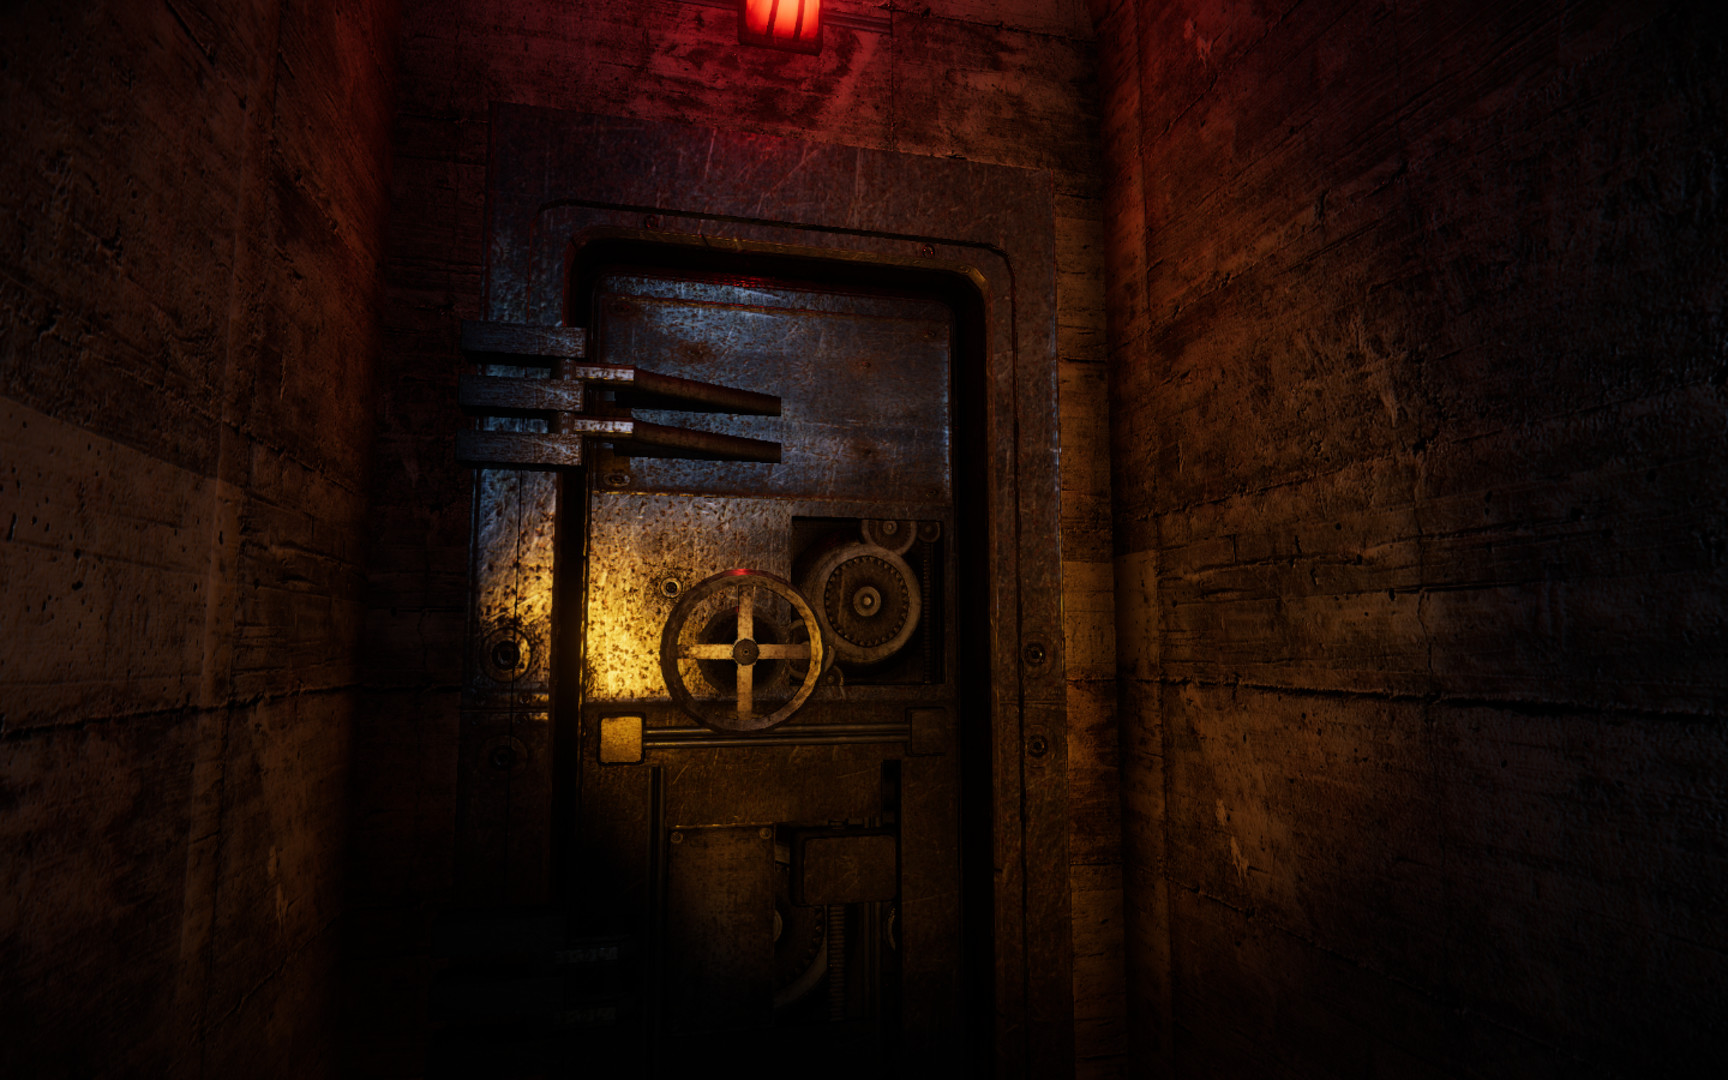 Steam Scp - Year of Clean Water